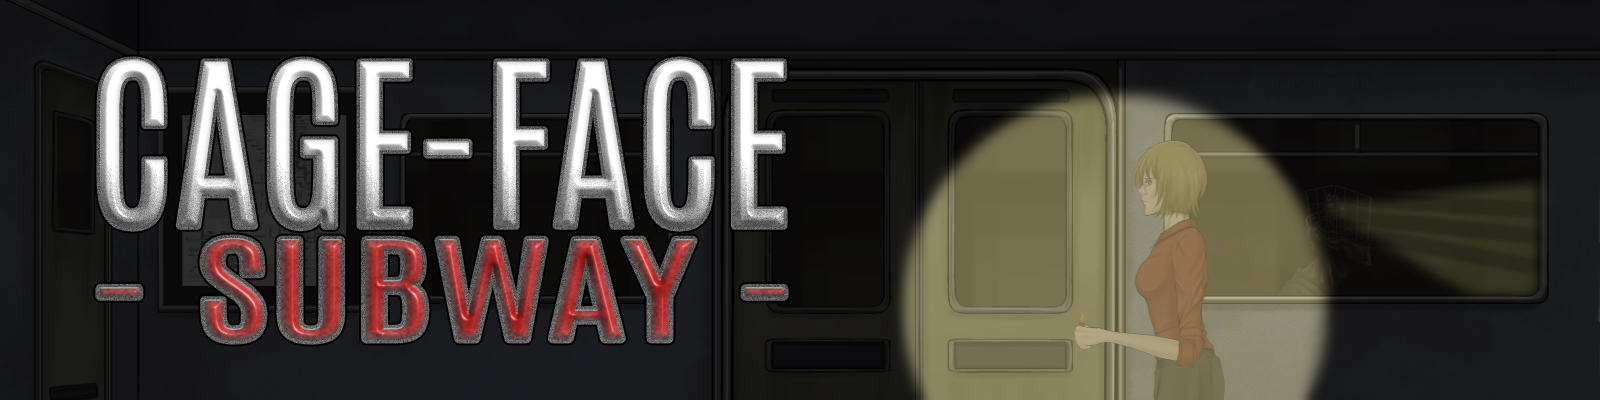 Cage-Face: Subway